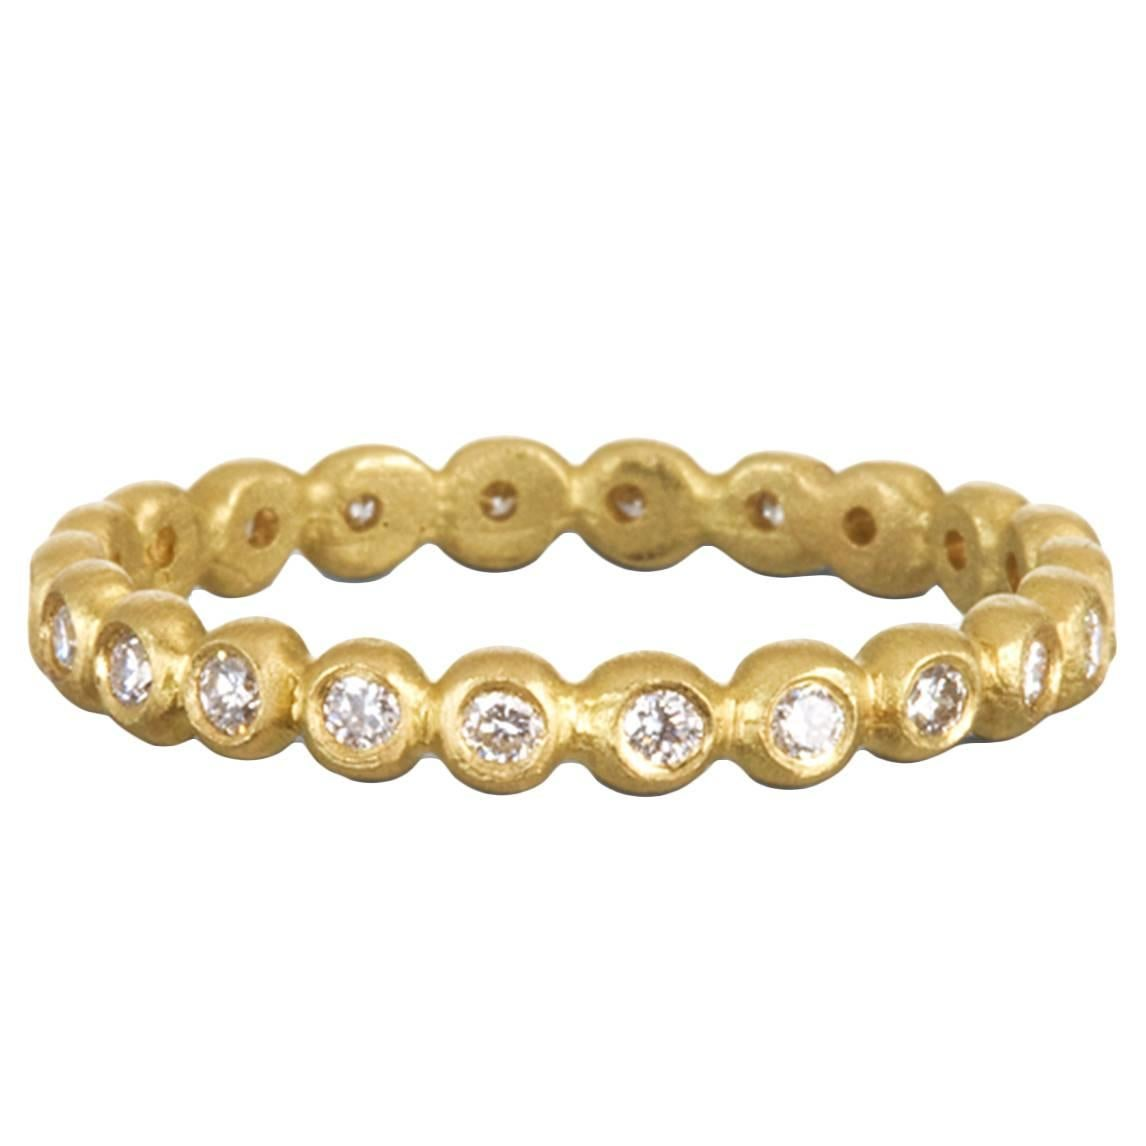 Faye Kim Diamond 18 Karat Gold Granulation Eternity Band Ring